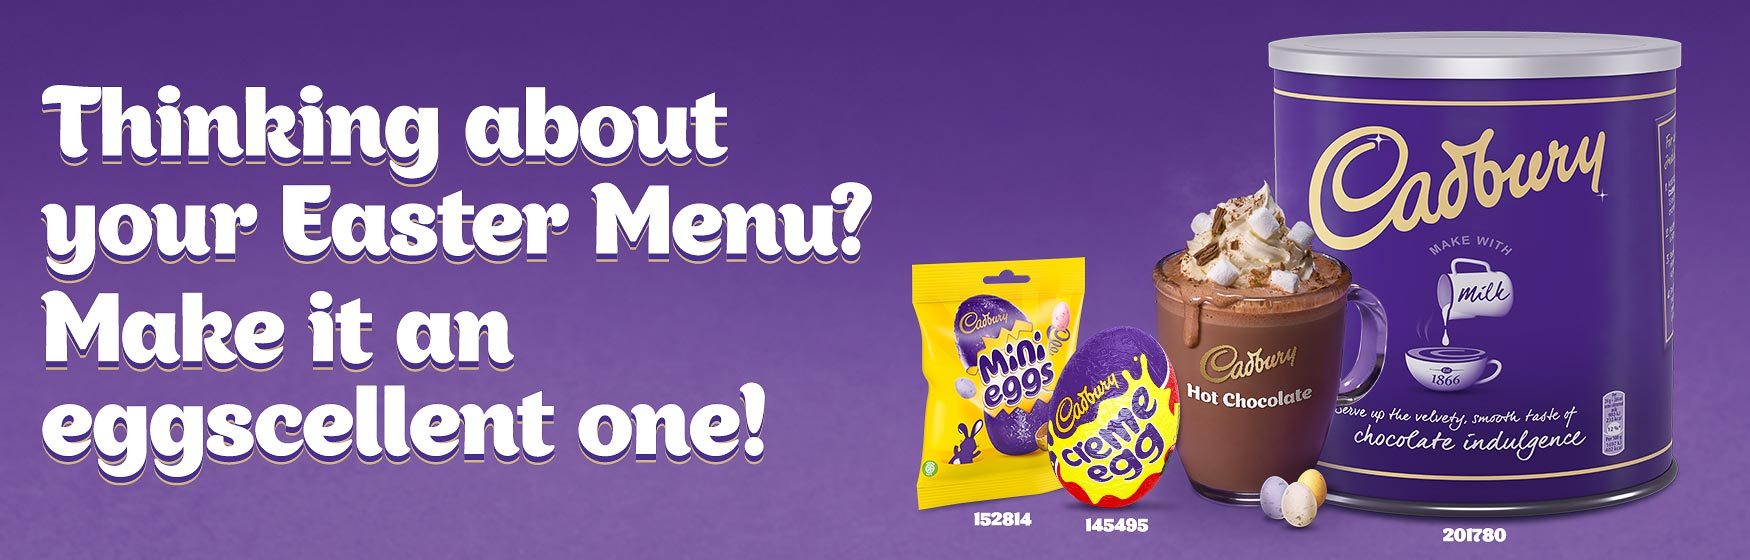 Cadbury - Thinking about your Easter menu?